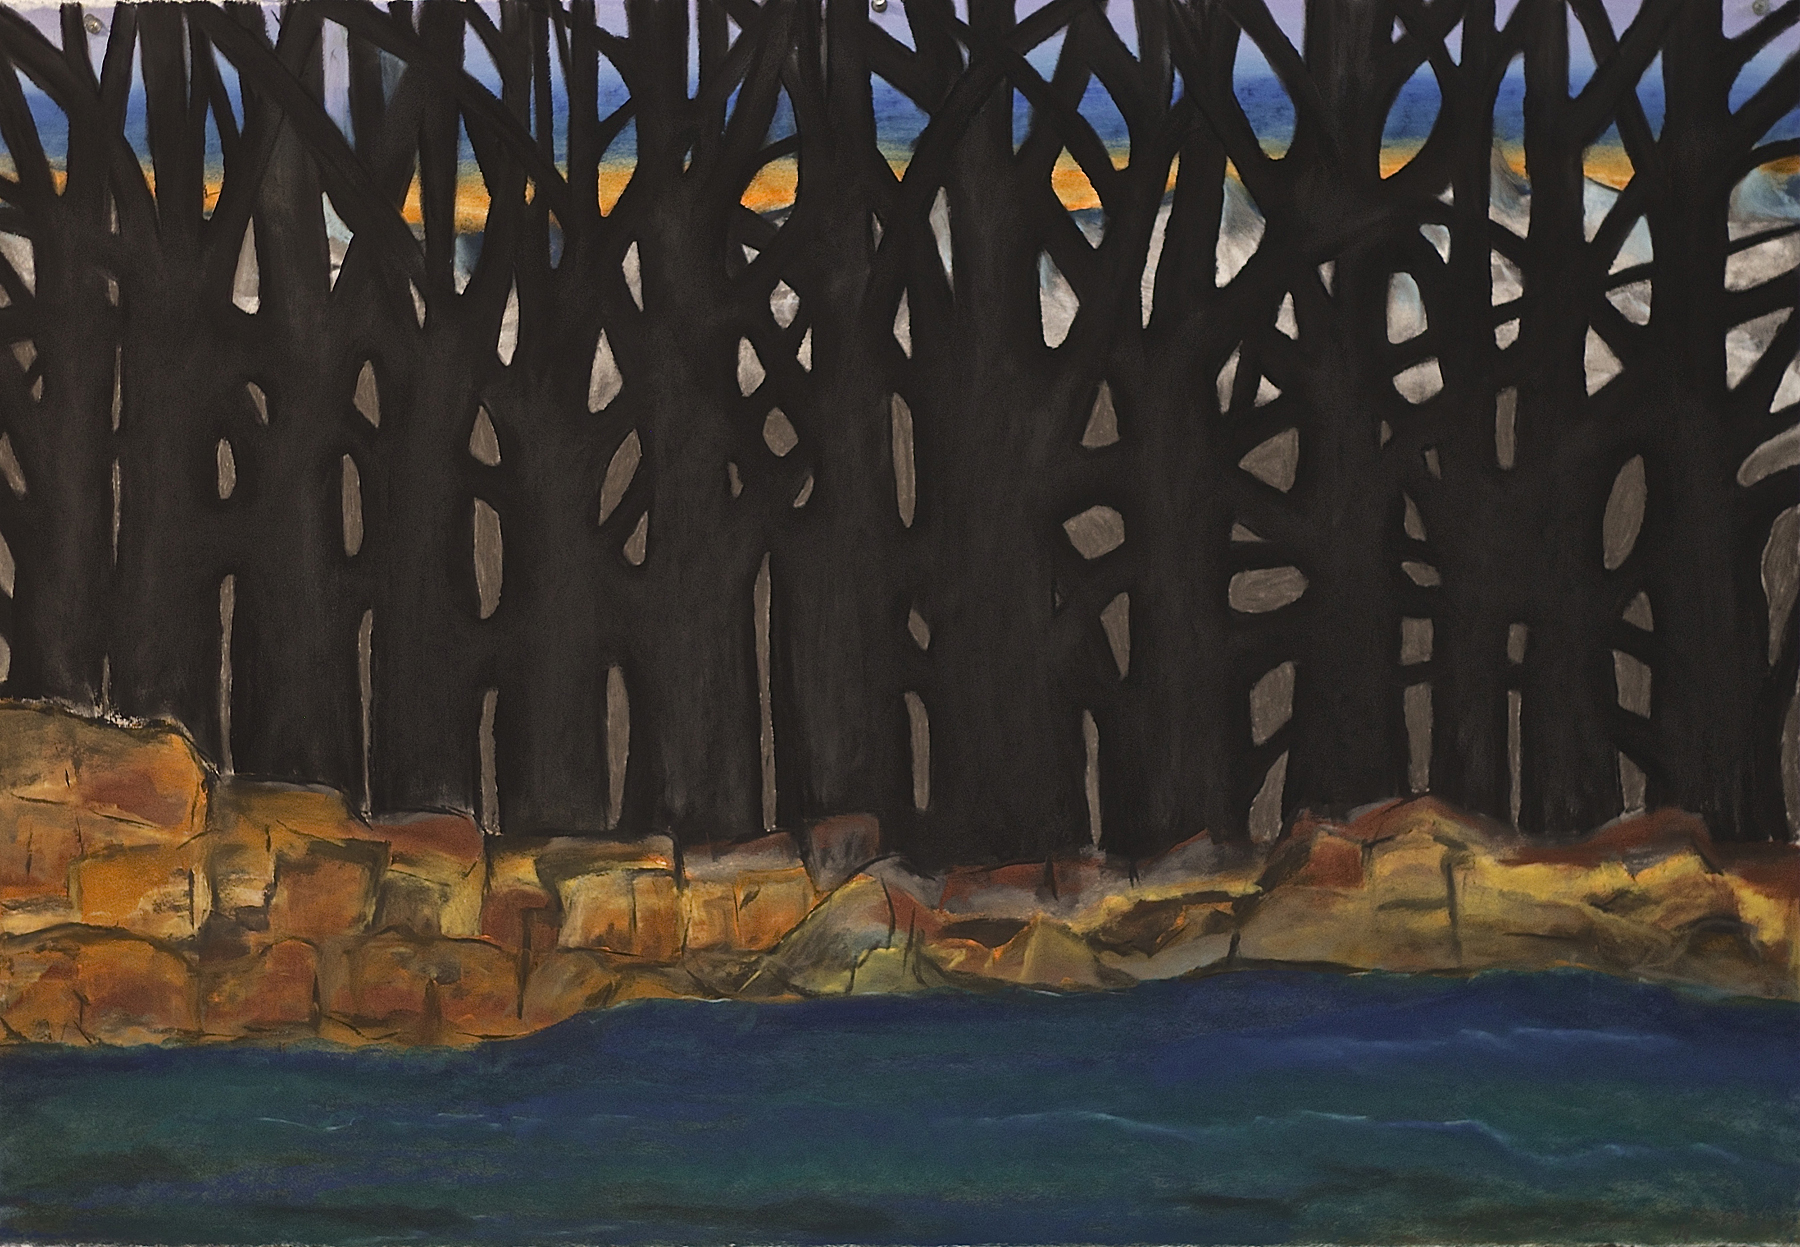 Scout K. Austin  and Kellie Weeks,  Untitled No. 30   pastel and charcoal, 44 x 30 in., $600.00